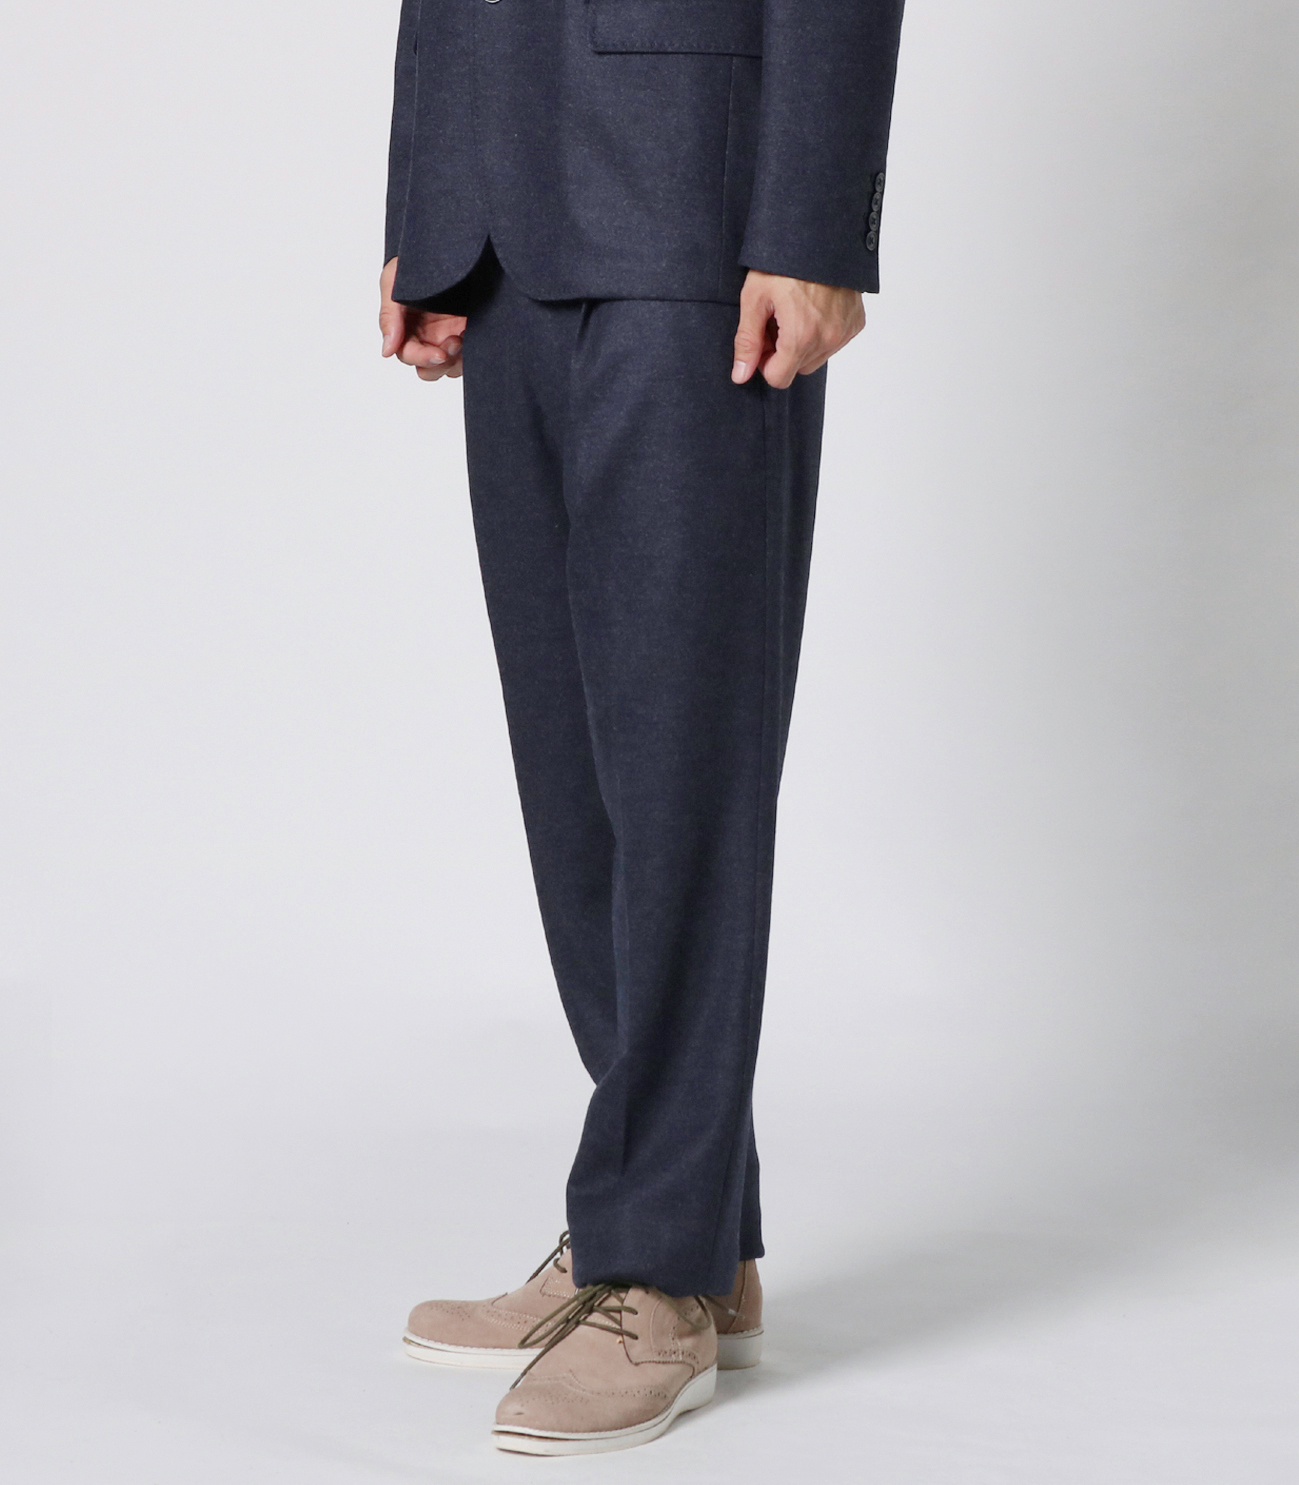 flannel smooth pleated pant 詳細画像 dark grey 6